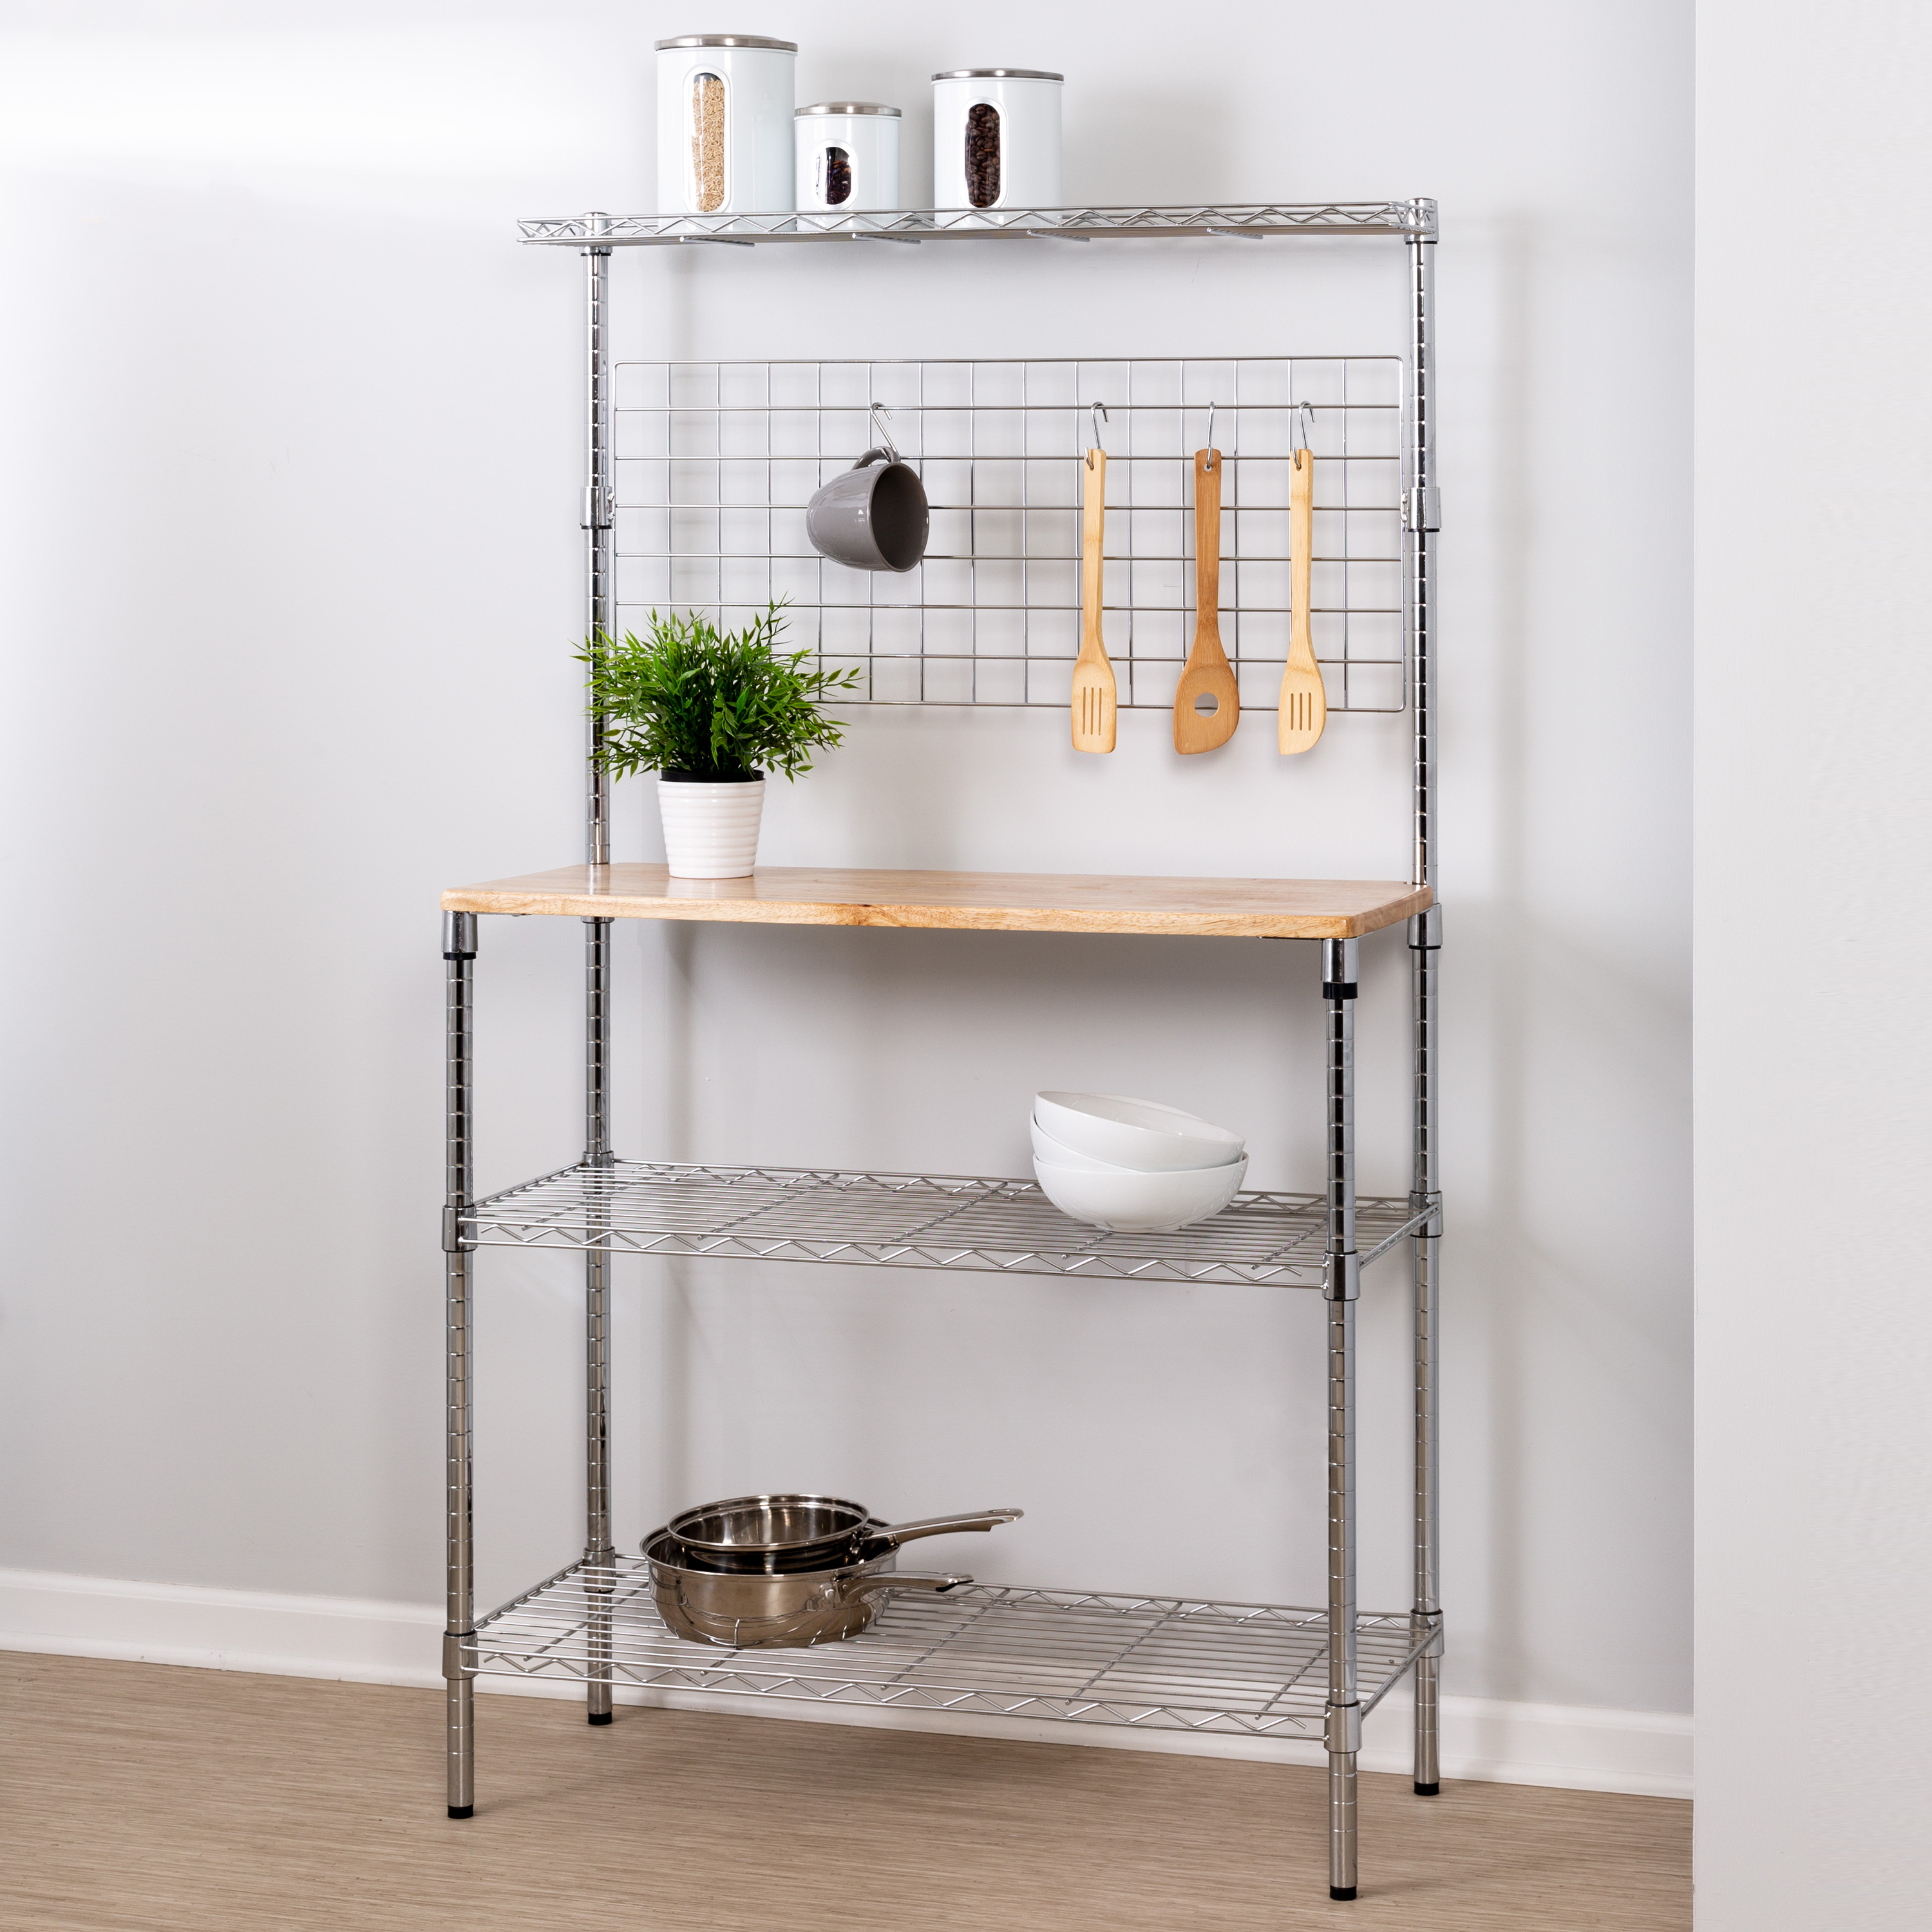 Honey Can Do 3-Tier Urban Bakers Rack with Hanging Bar, Chrome/Natural